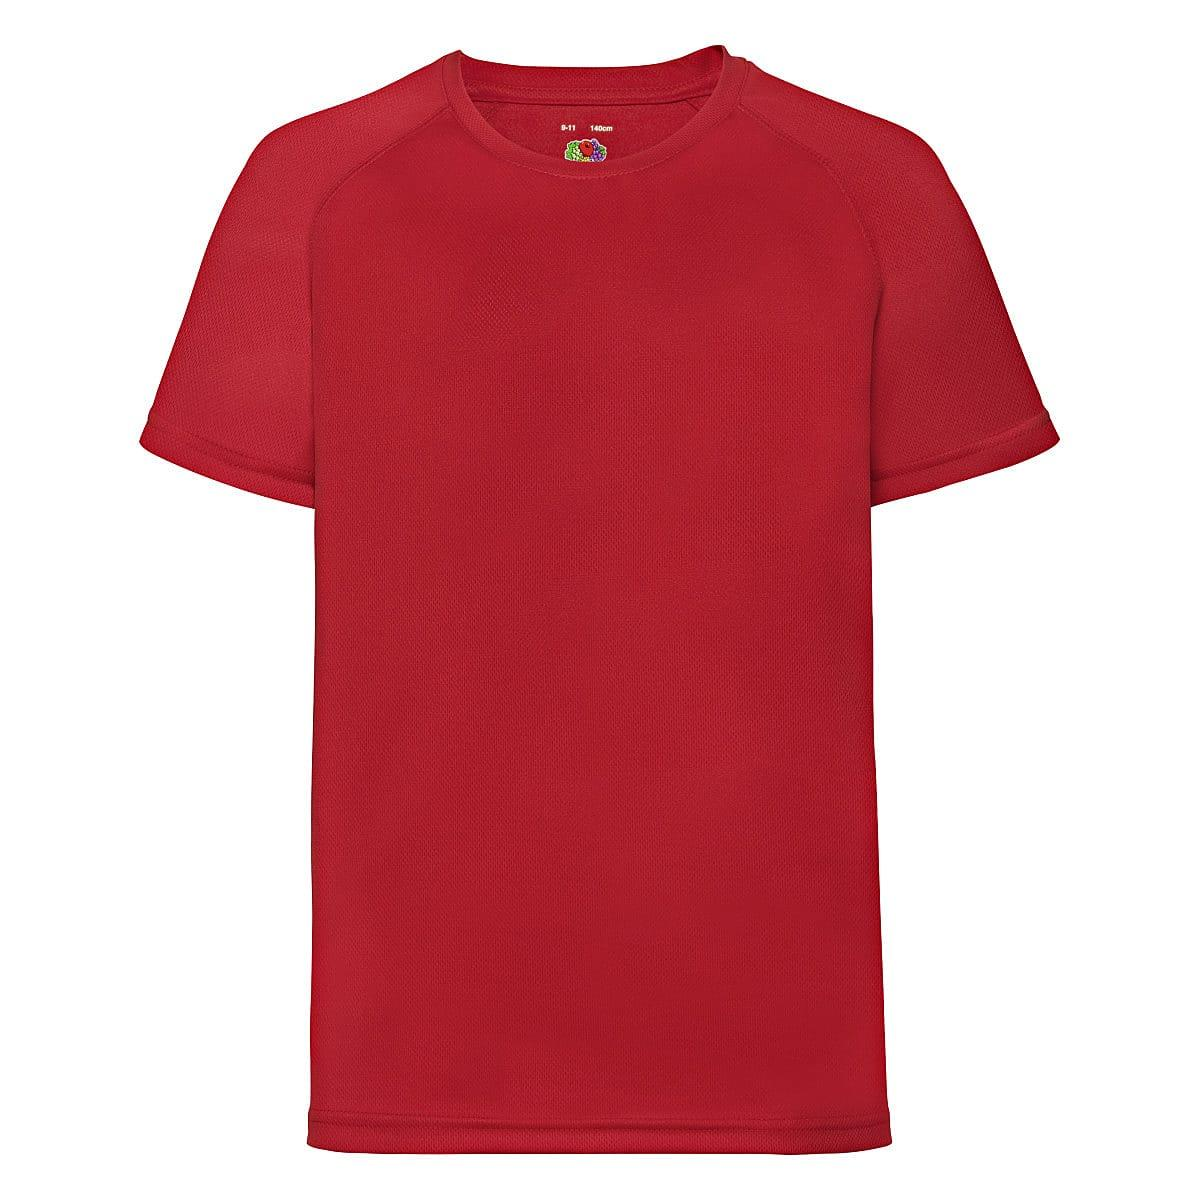 Fruit Of The Loom Childrens Kids Performance T-Shirt in Red (Product Code: 61013)